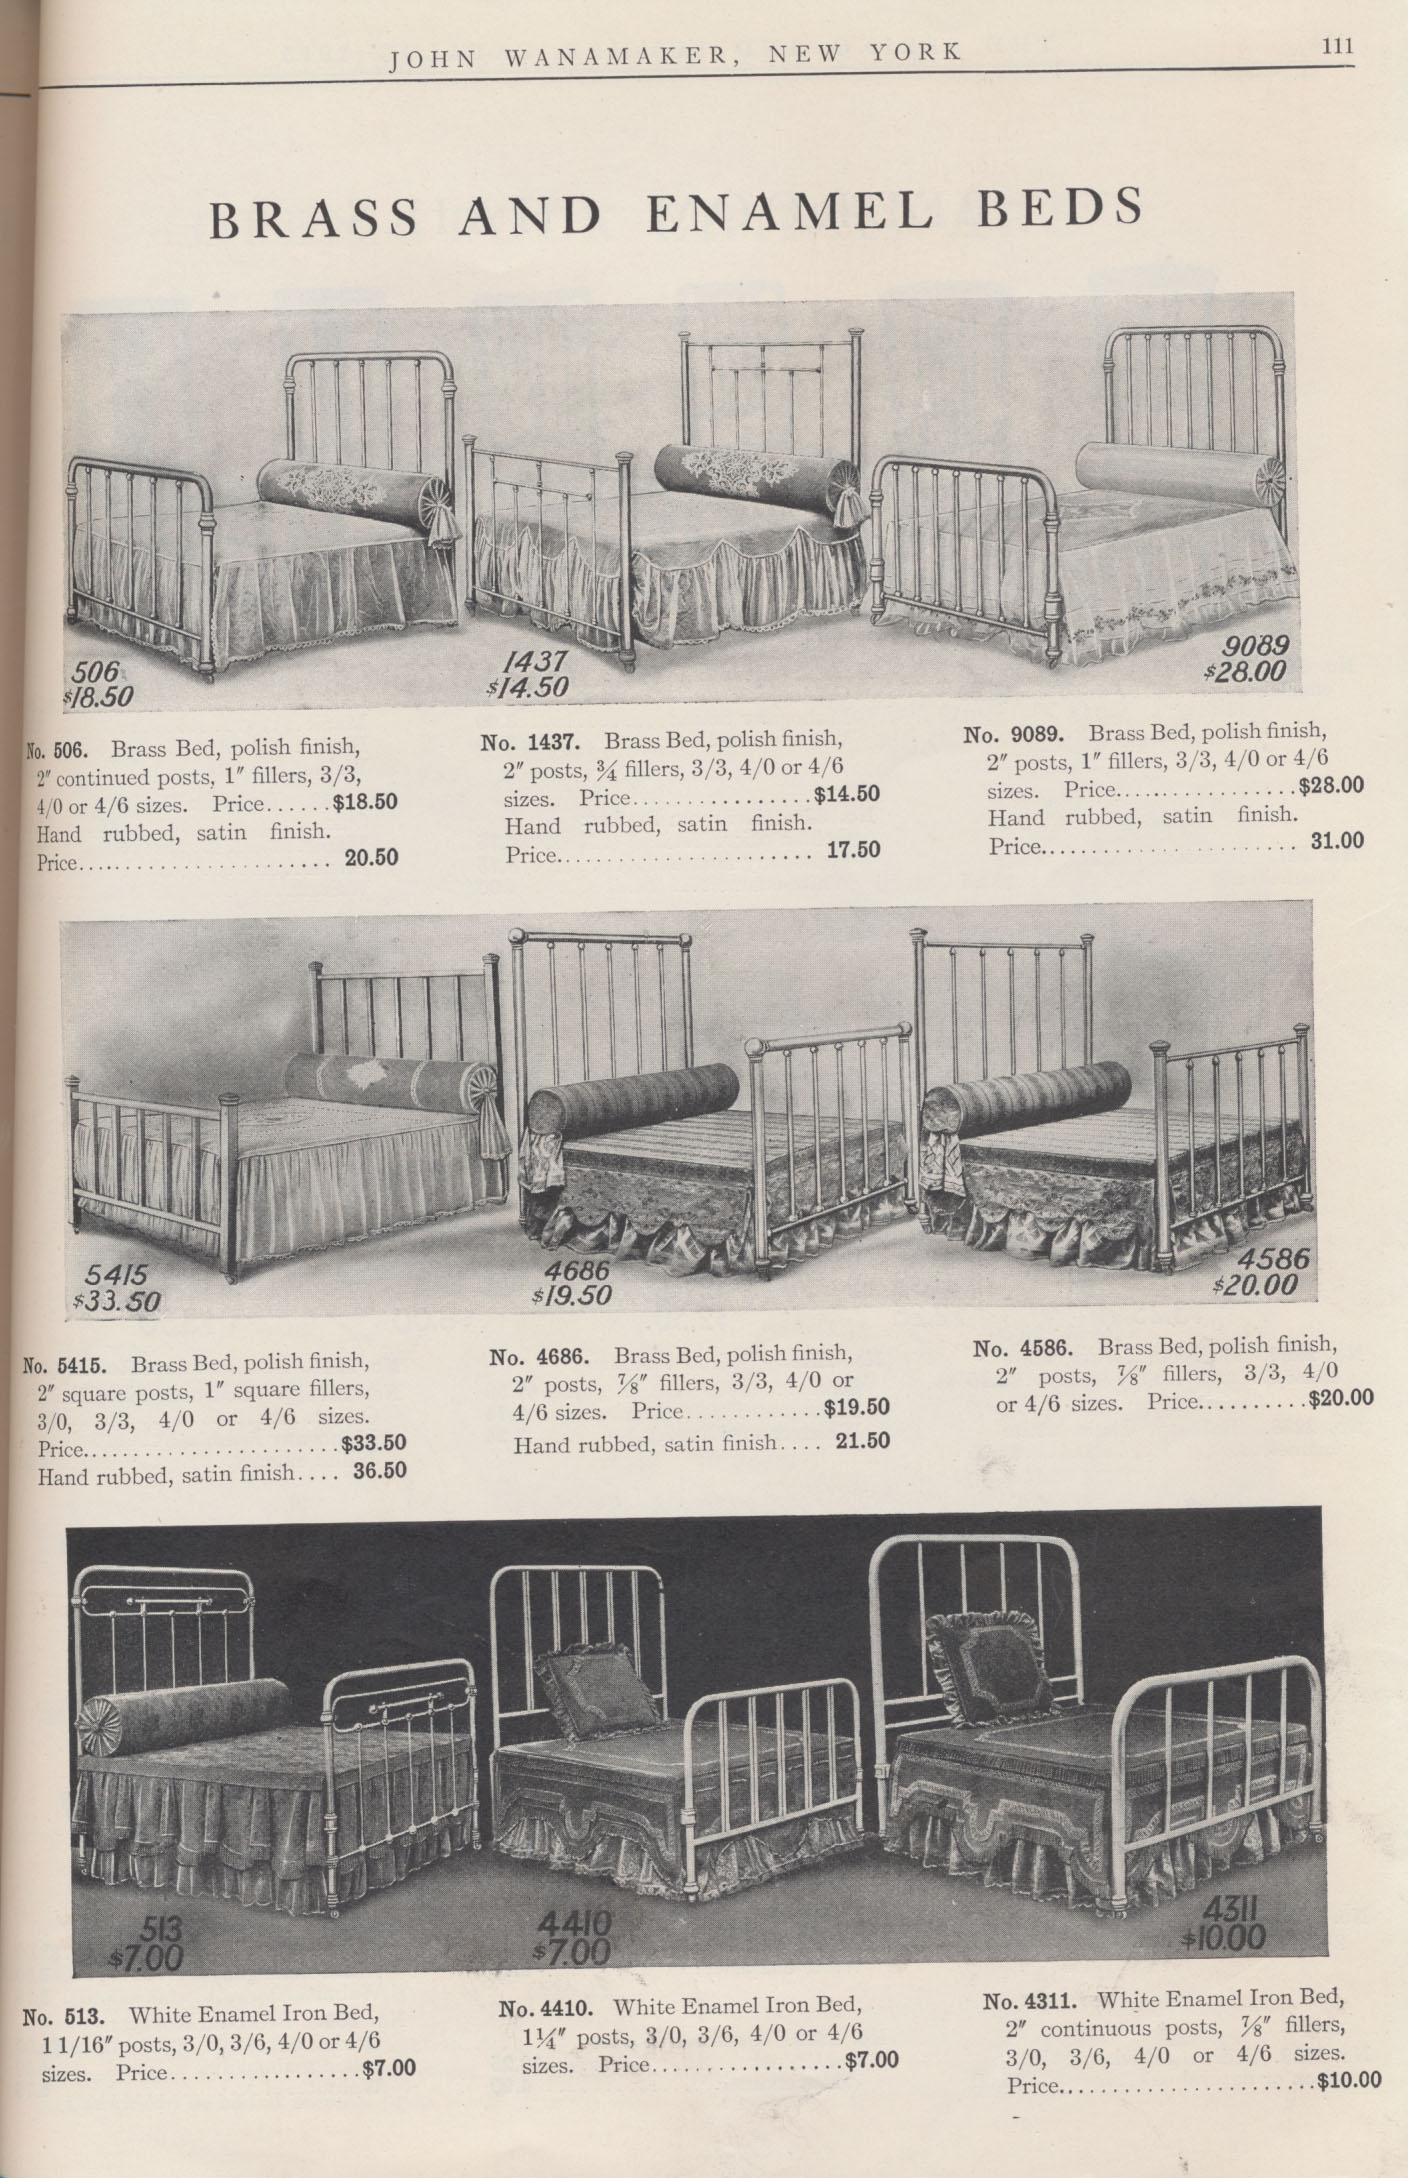 Brass and Enamel Beds